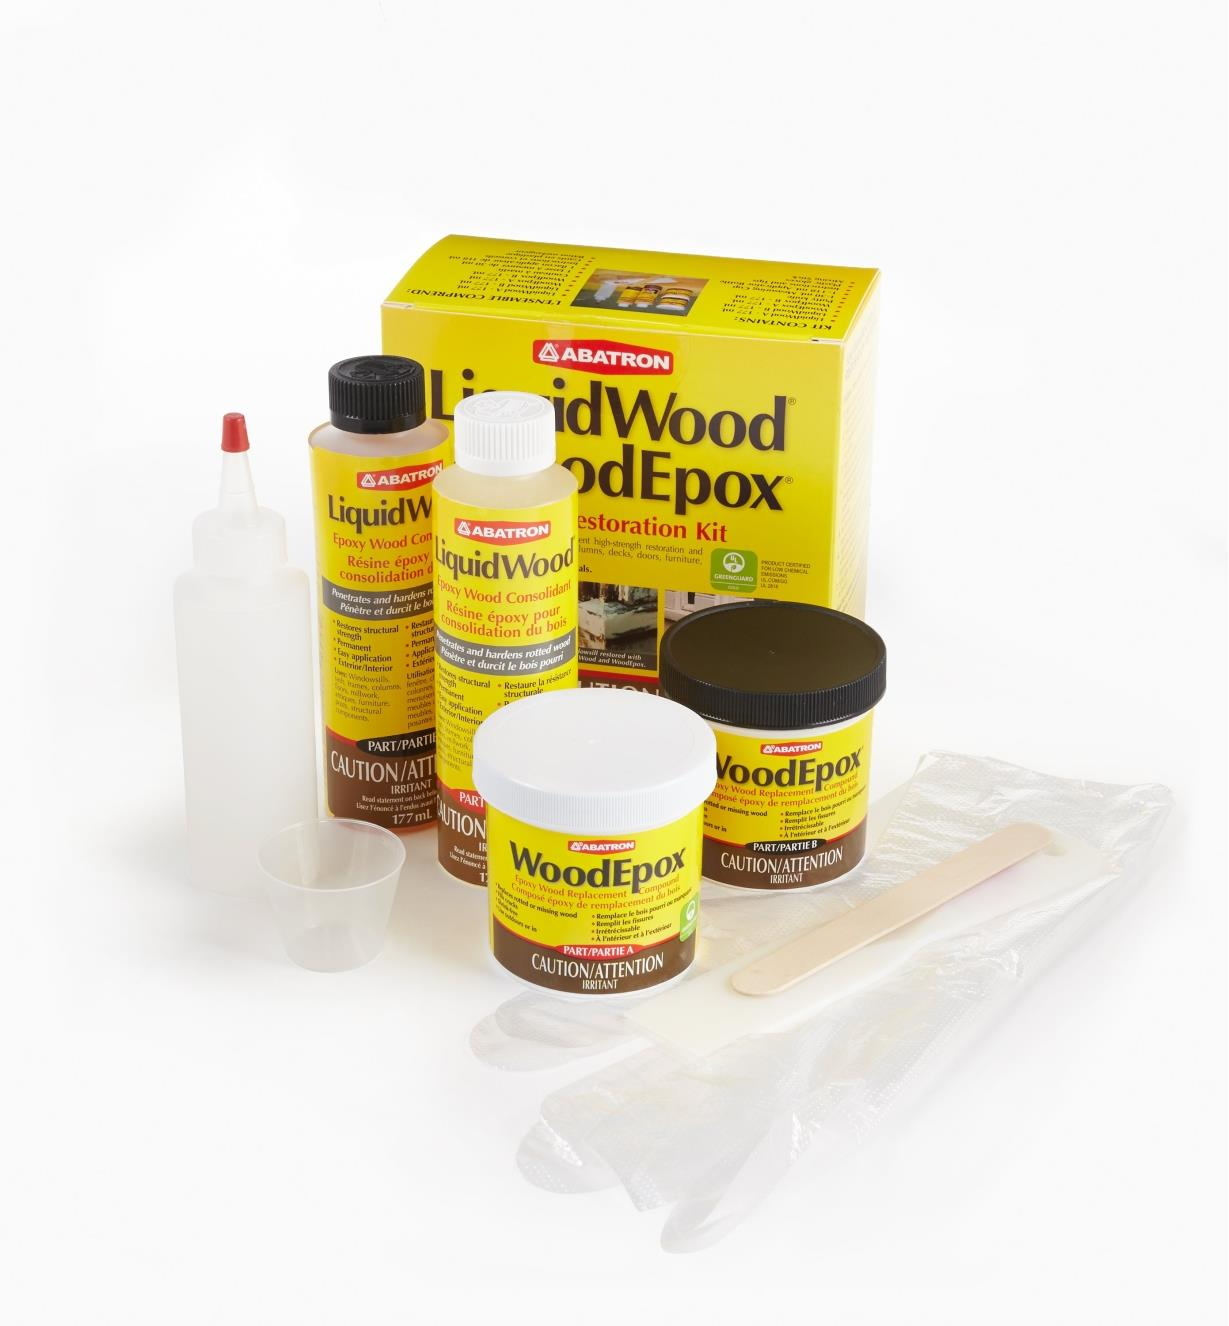 56k0701 - Wood Restoration Kit, 24 fl oz